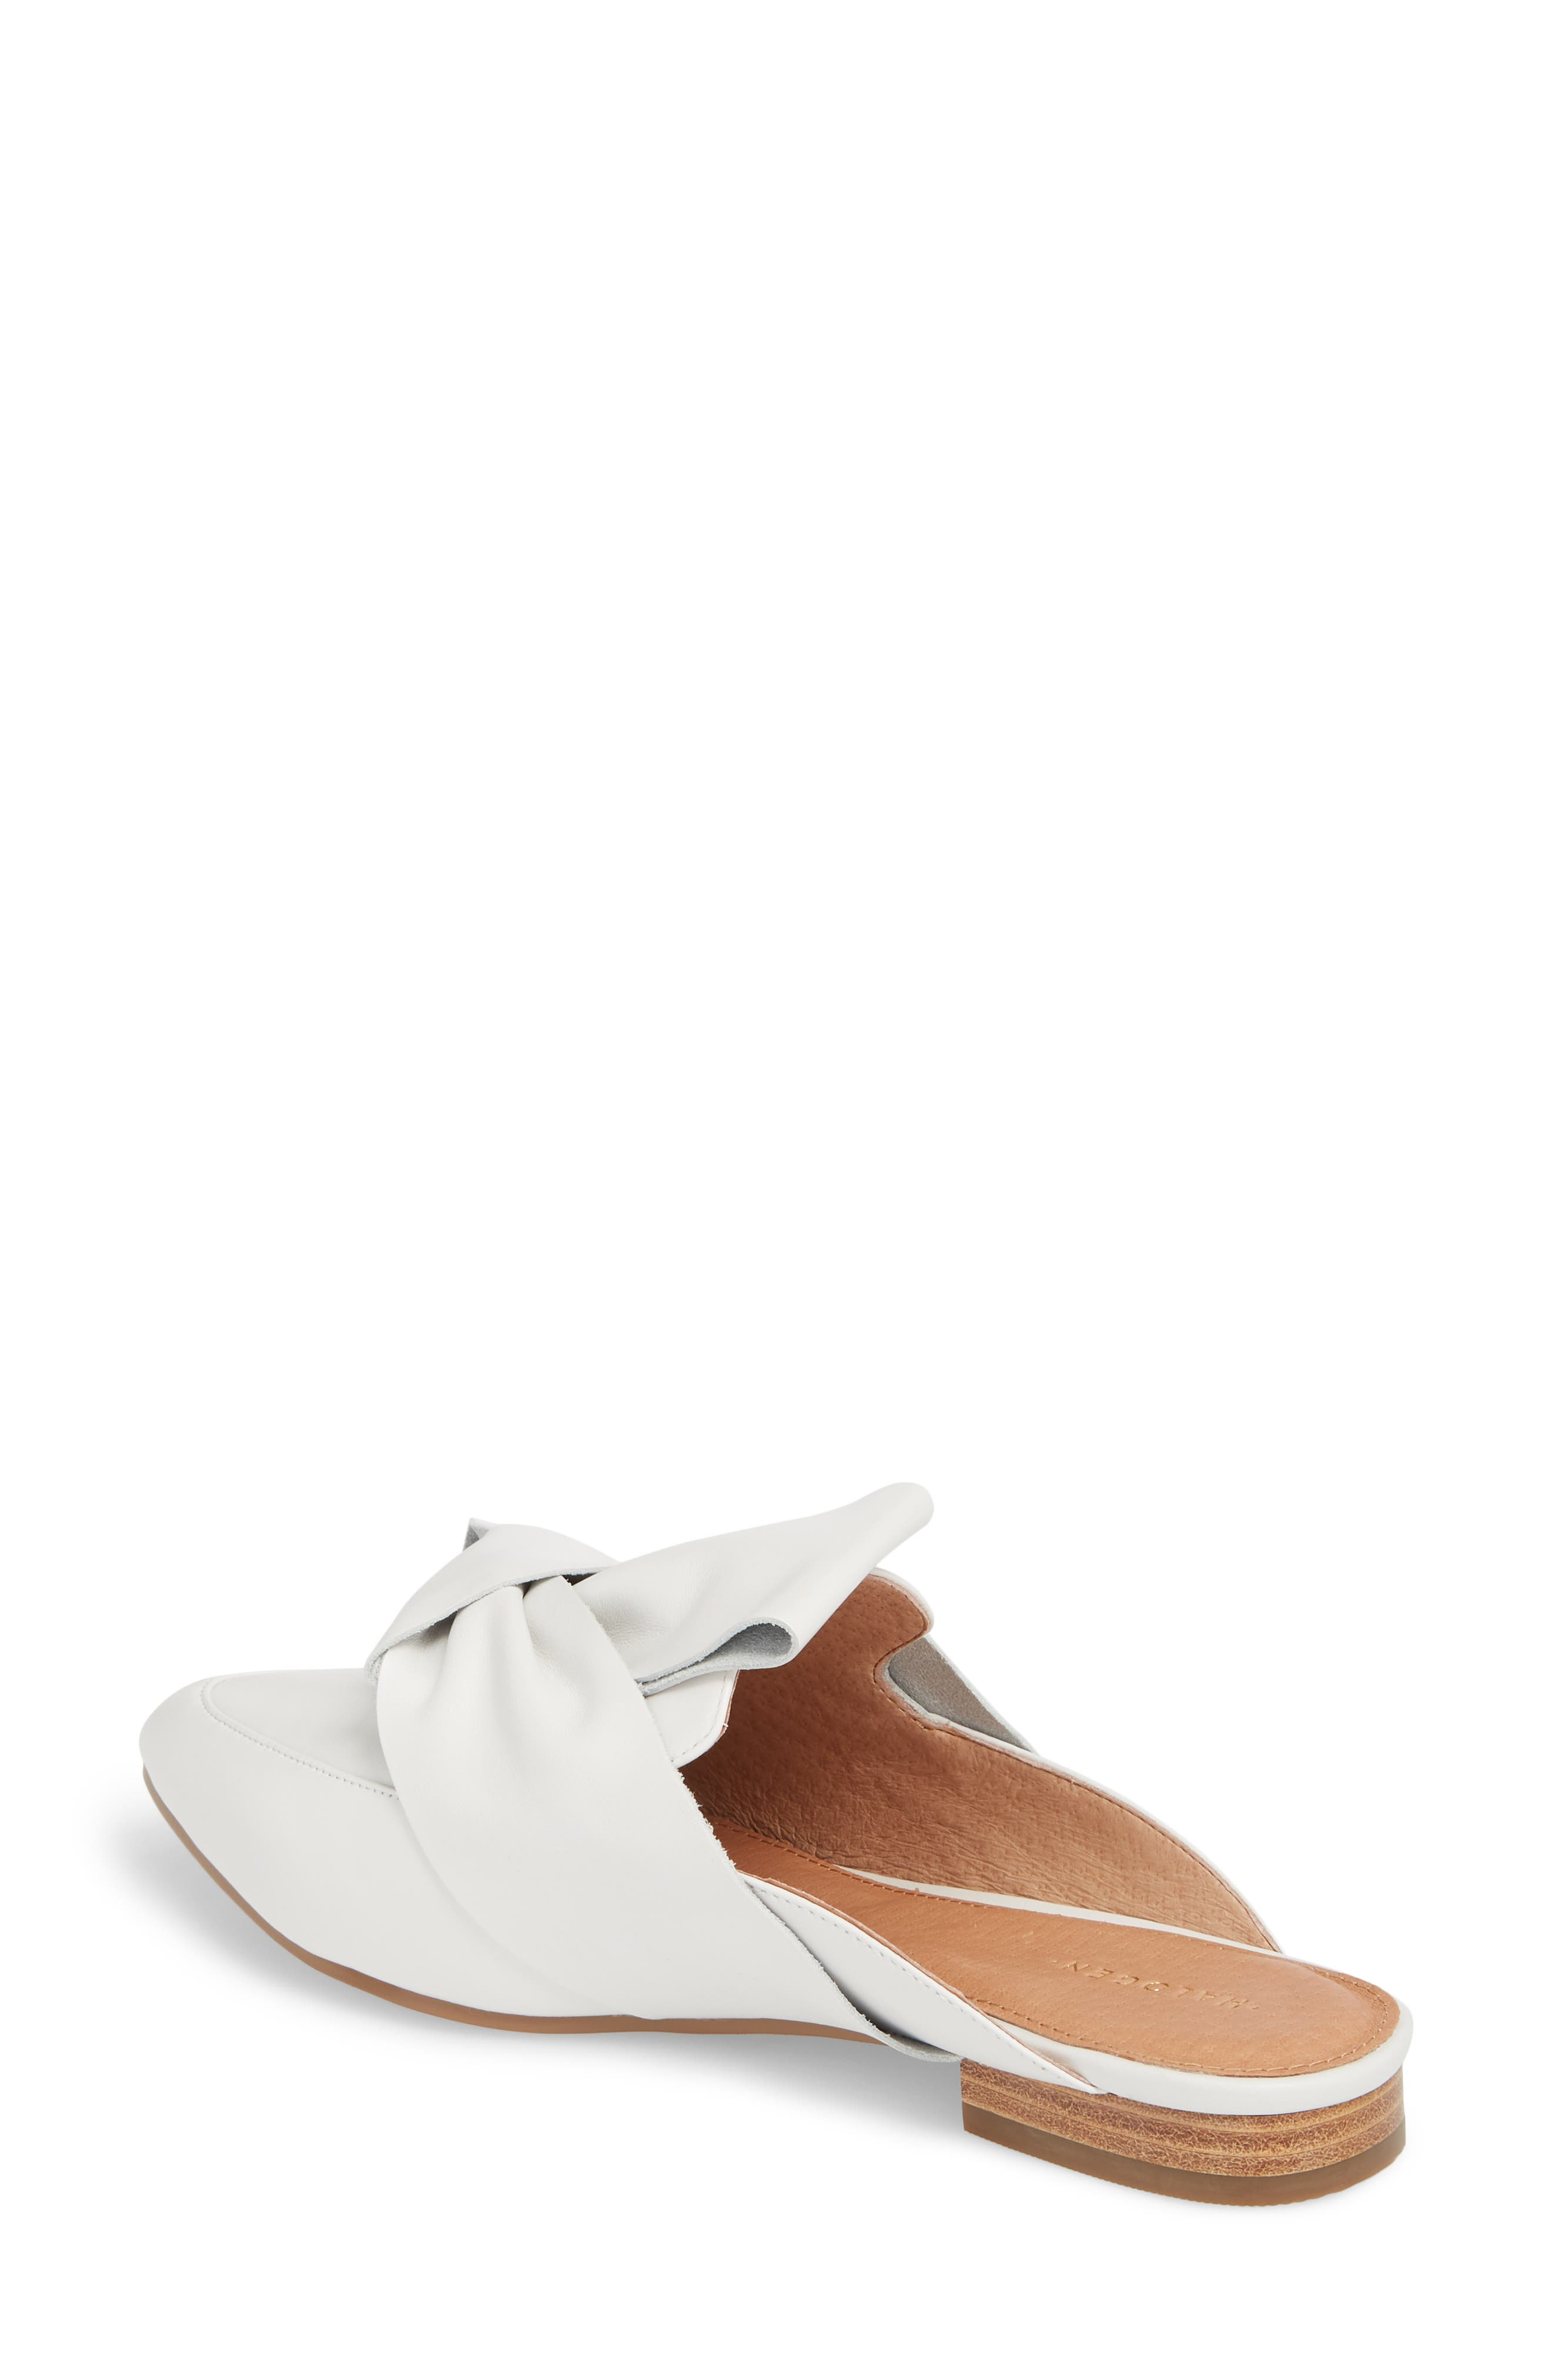 Coral Mule,                             Alternate thumbnail 2, color,                             White Leather